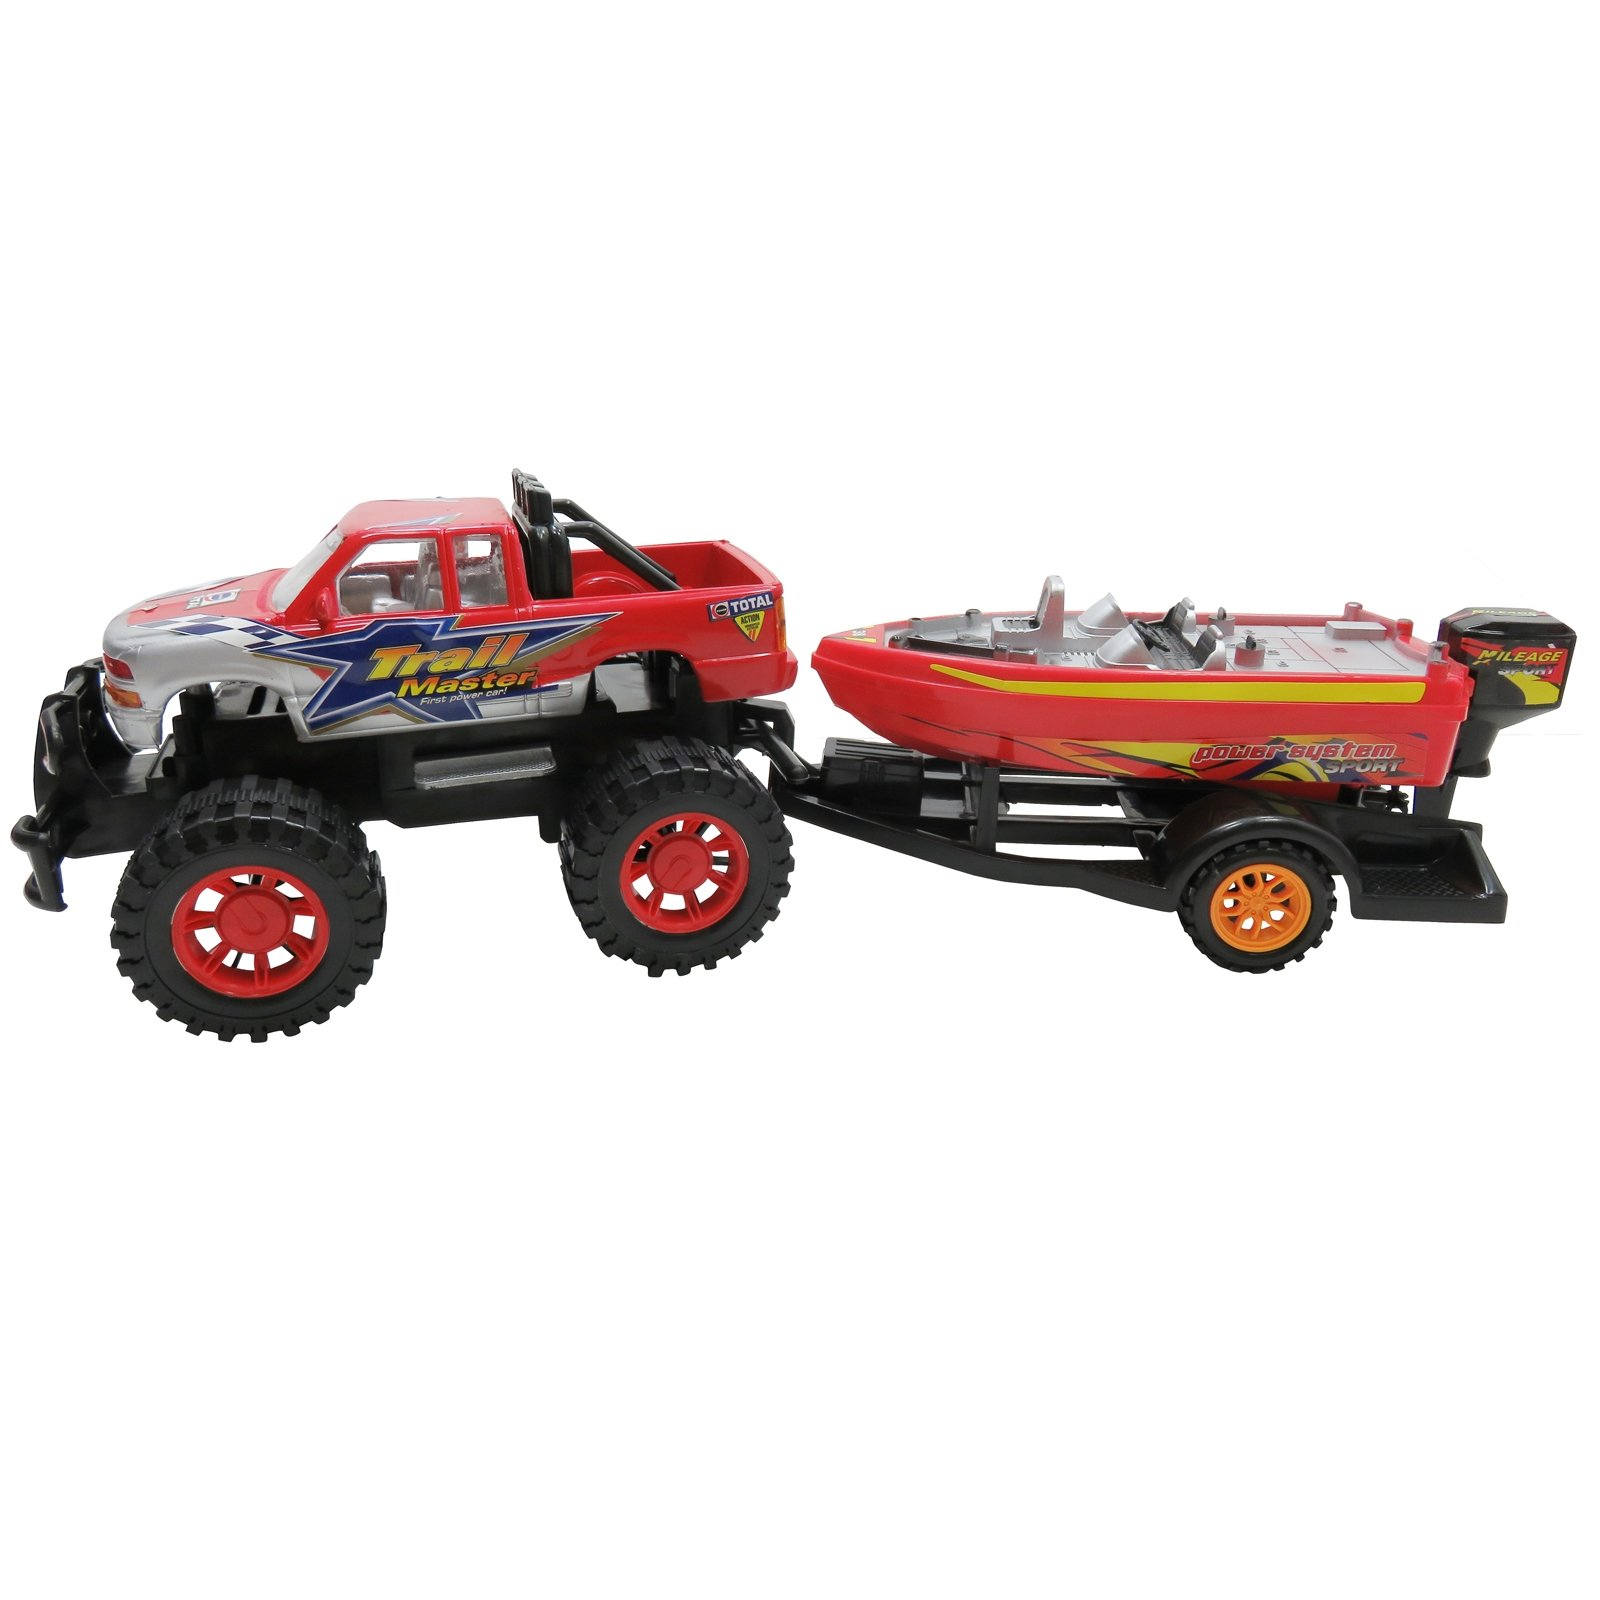 Speed Max King Friction Power Monster Truck Speed Boat Hauler Play Set by Kid Fun